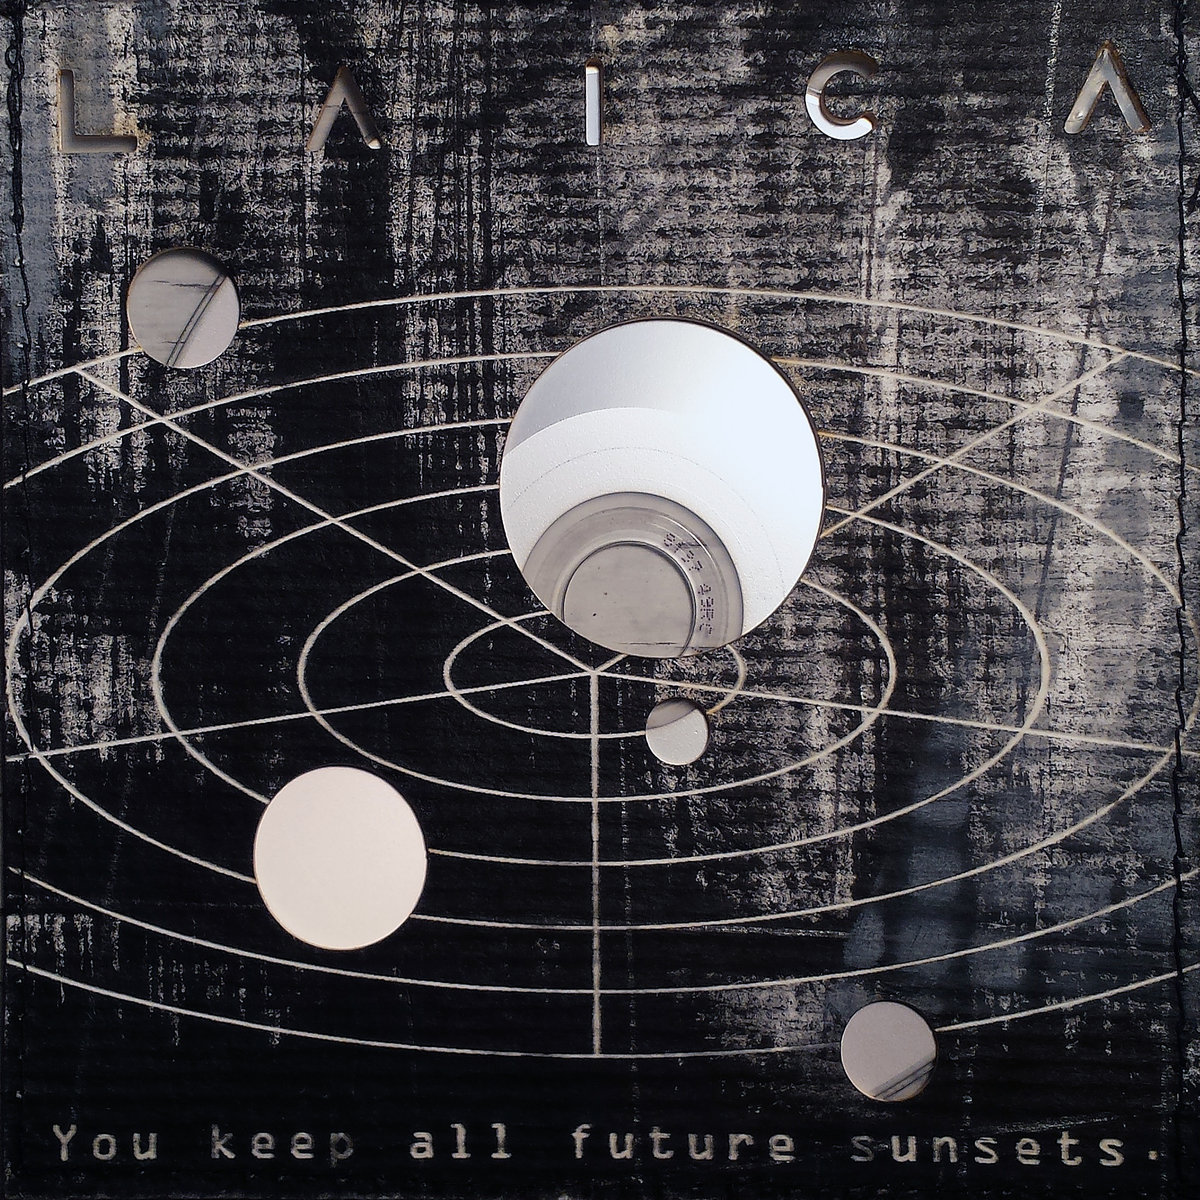 Laica - You keep all future sunsets cdr